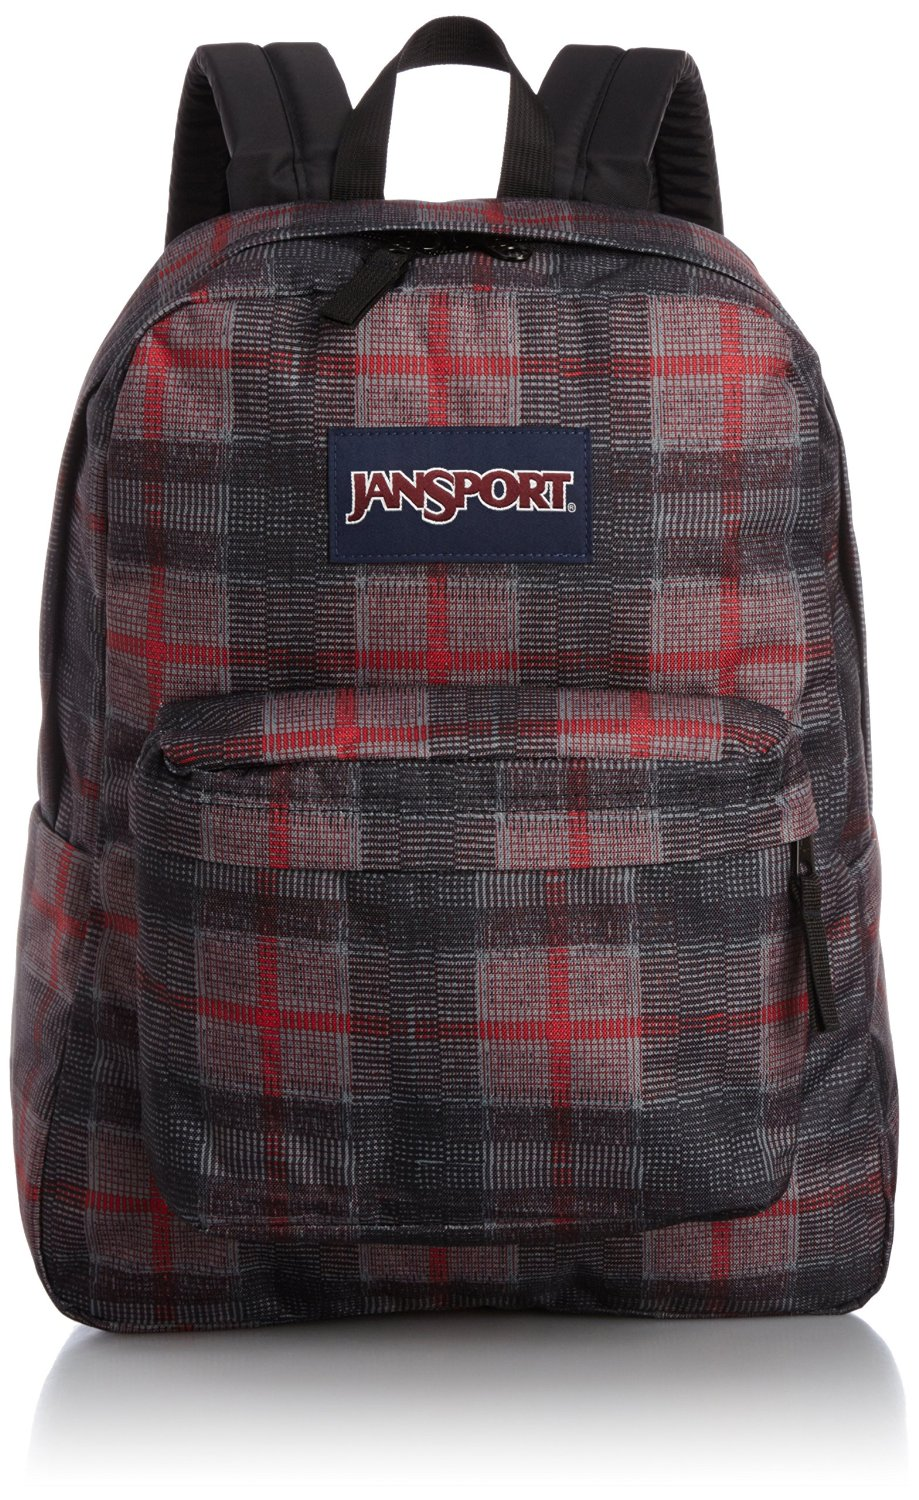 21f423b879c4 Buy JanSport SuperBreak Backpack (Red Tape Knit Plaid) in Cheap ...